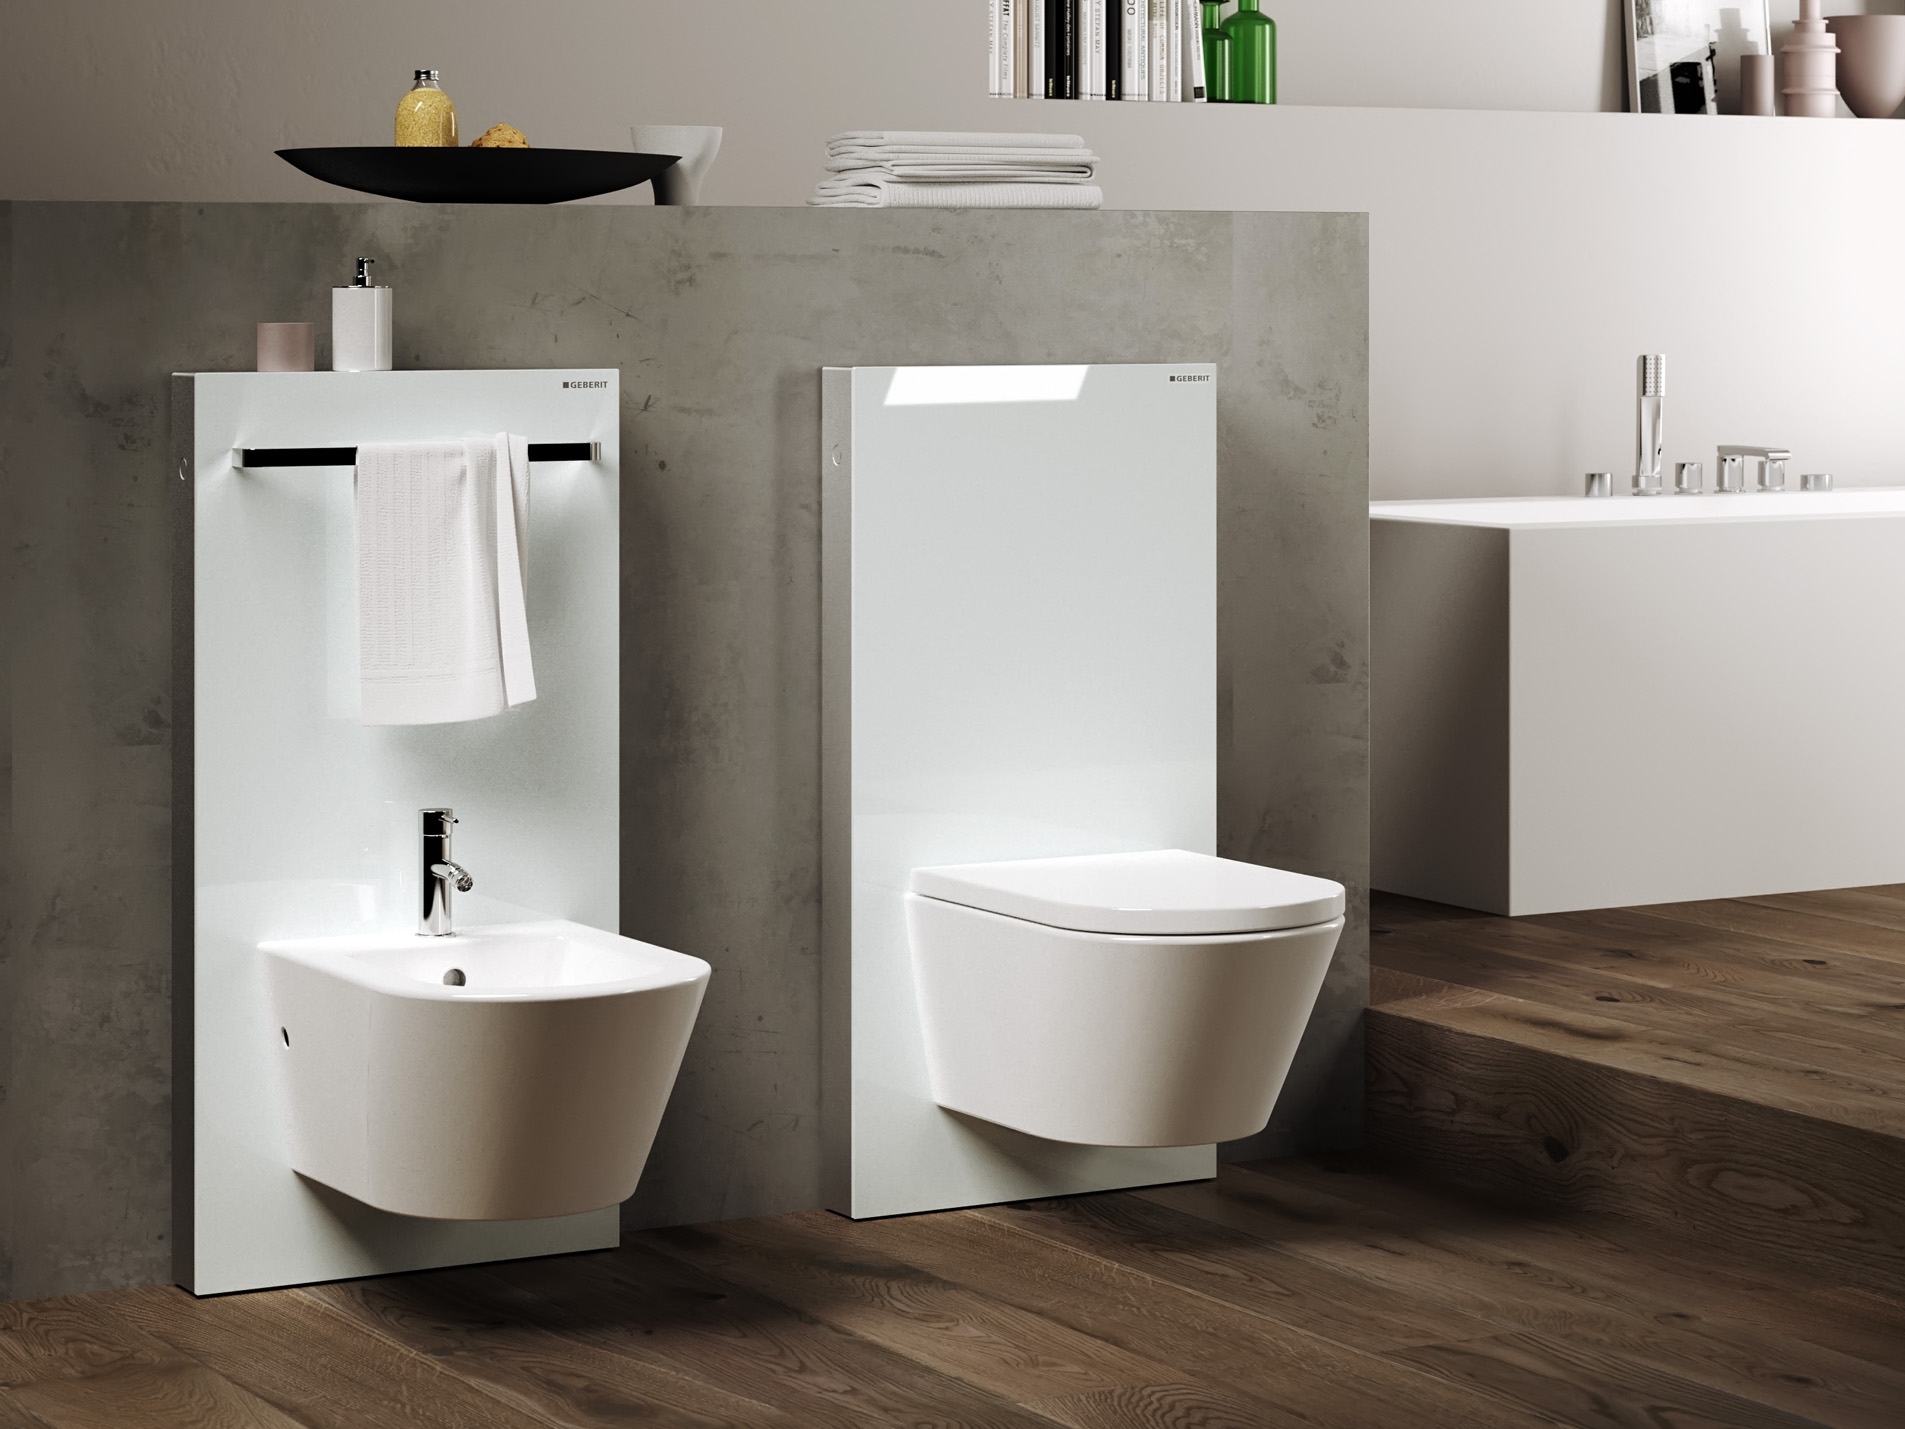 monolith sanitary module for bidets by geberit italia